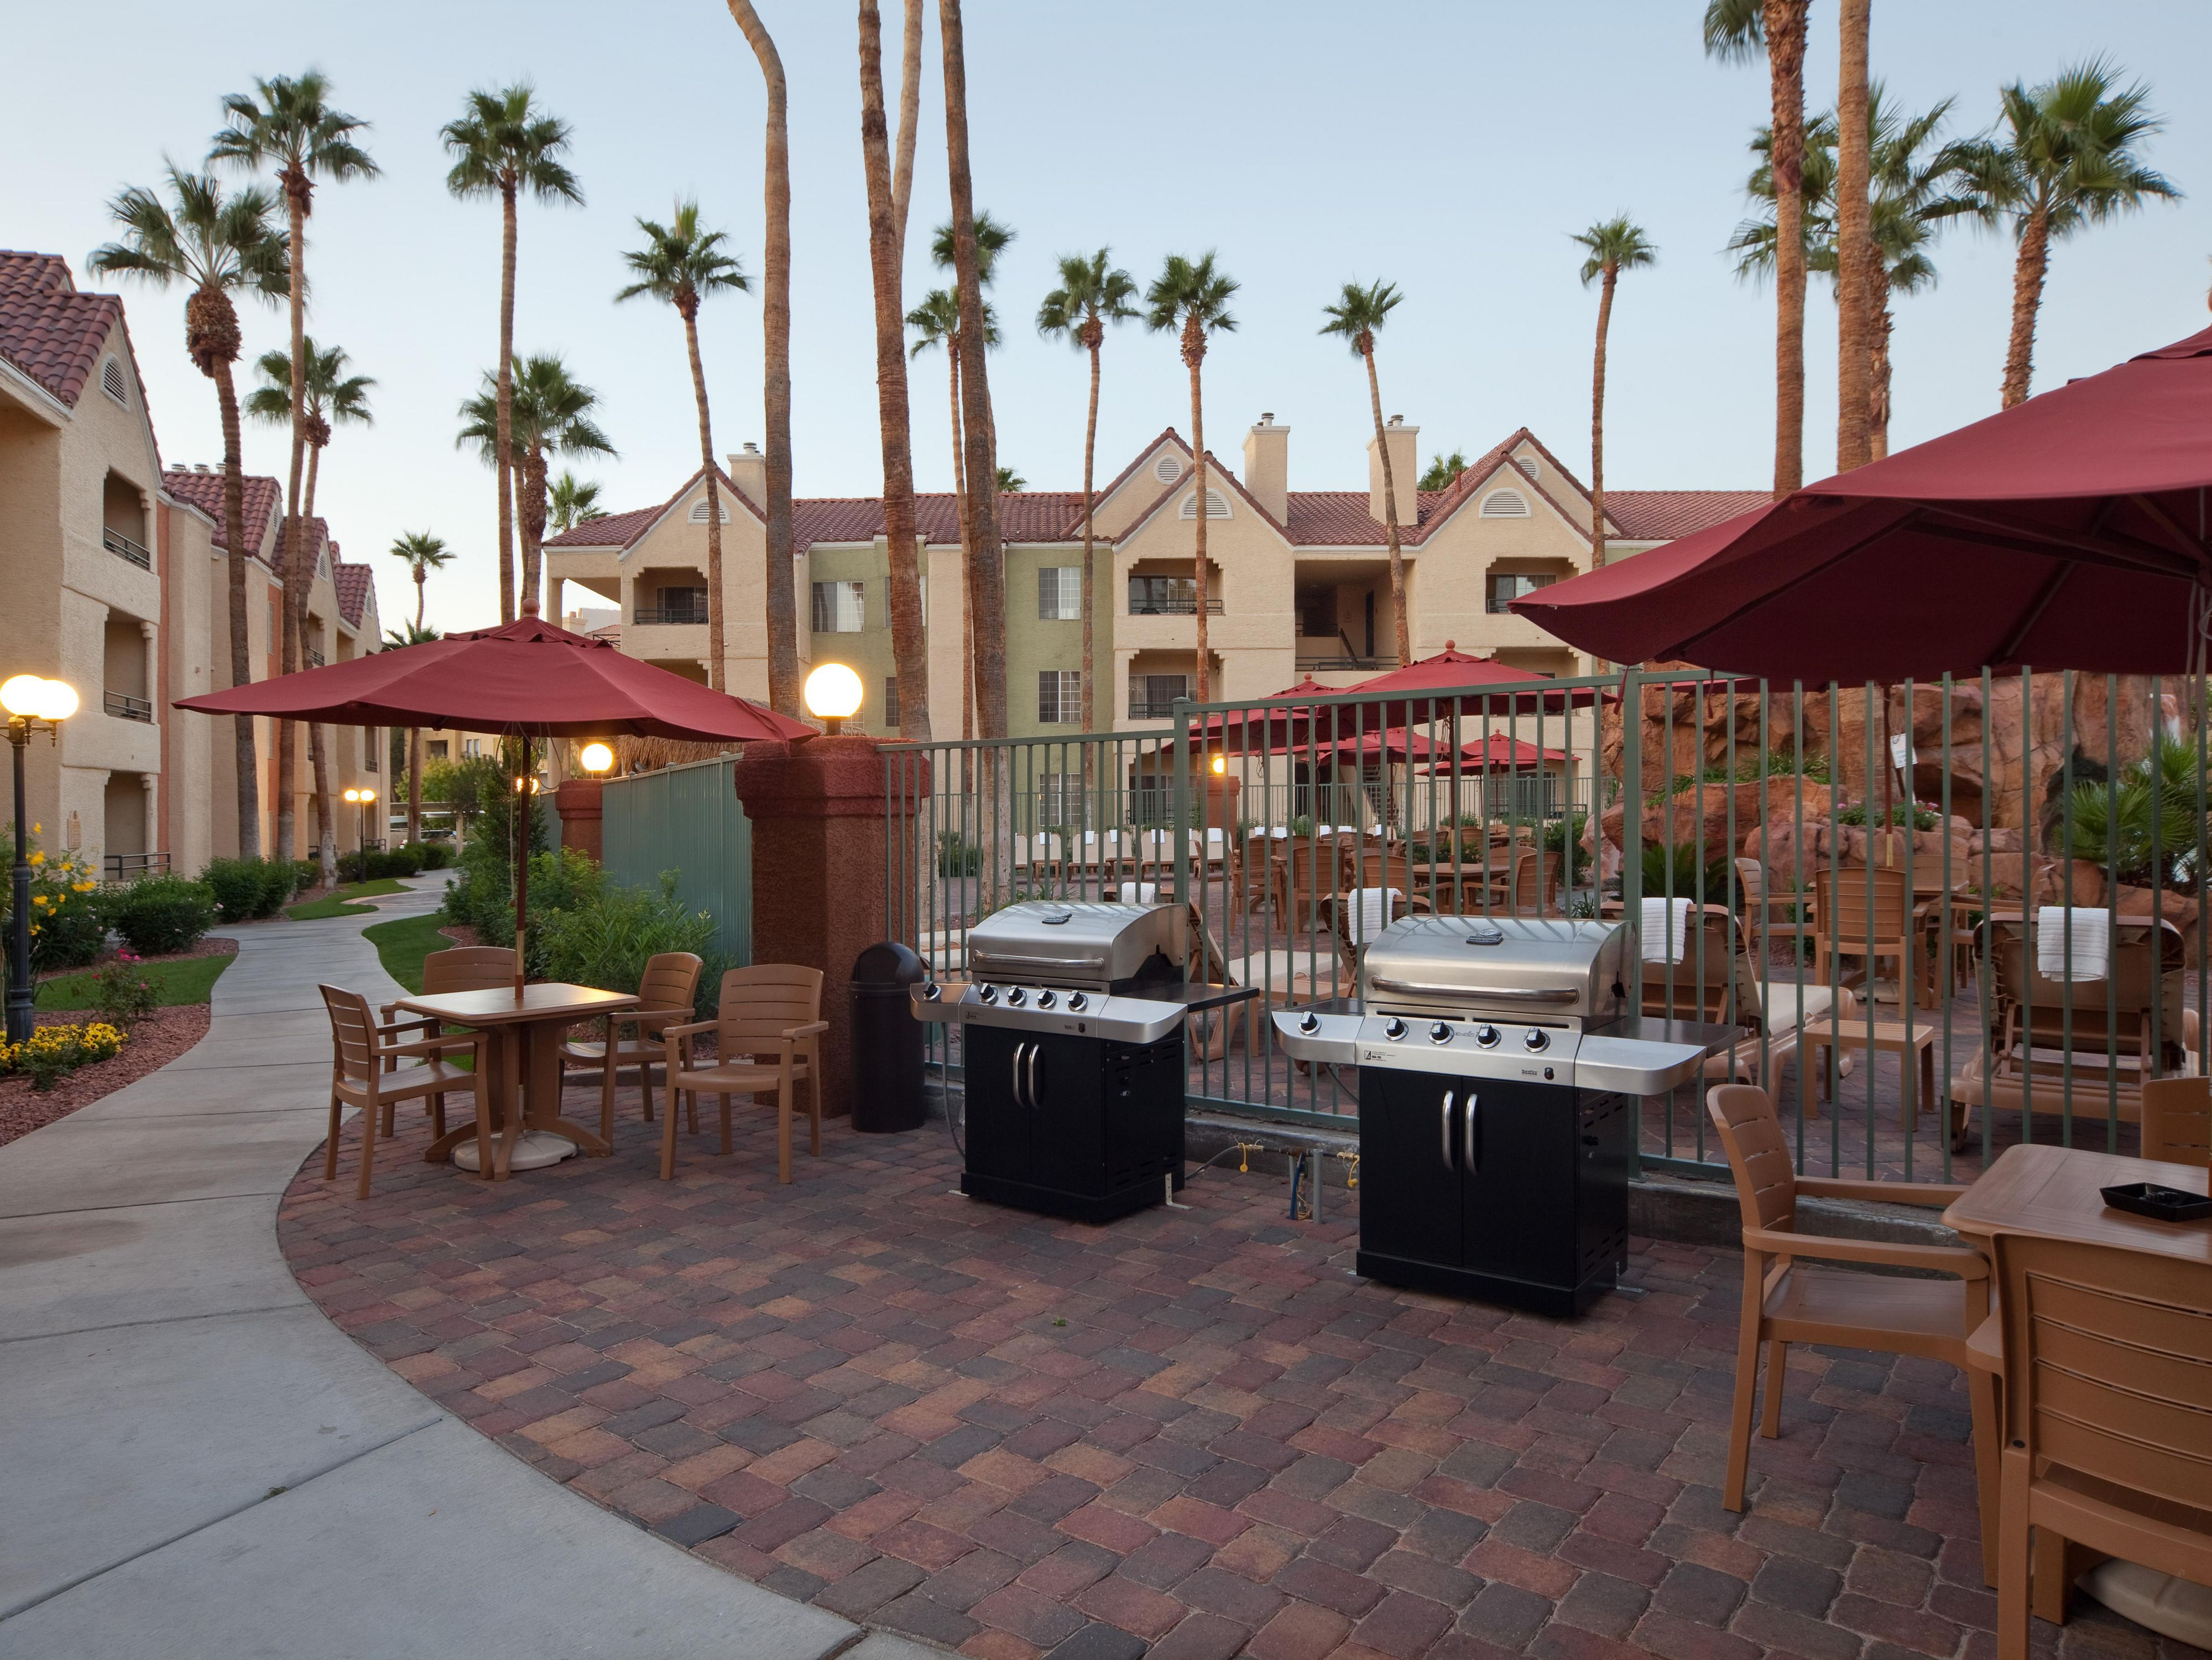 Enjoy the outdoor grills located throughout the resort